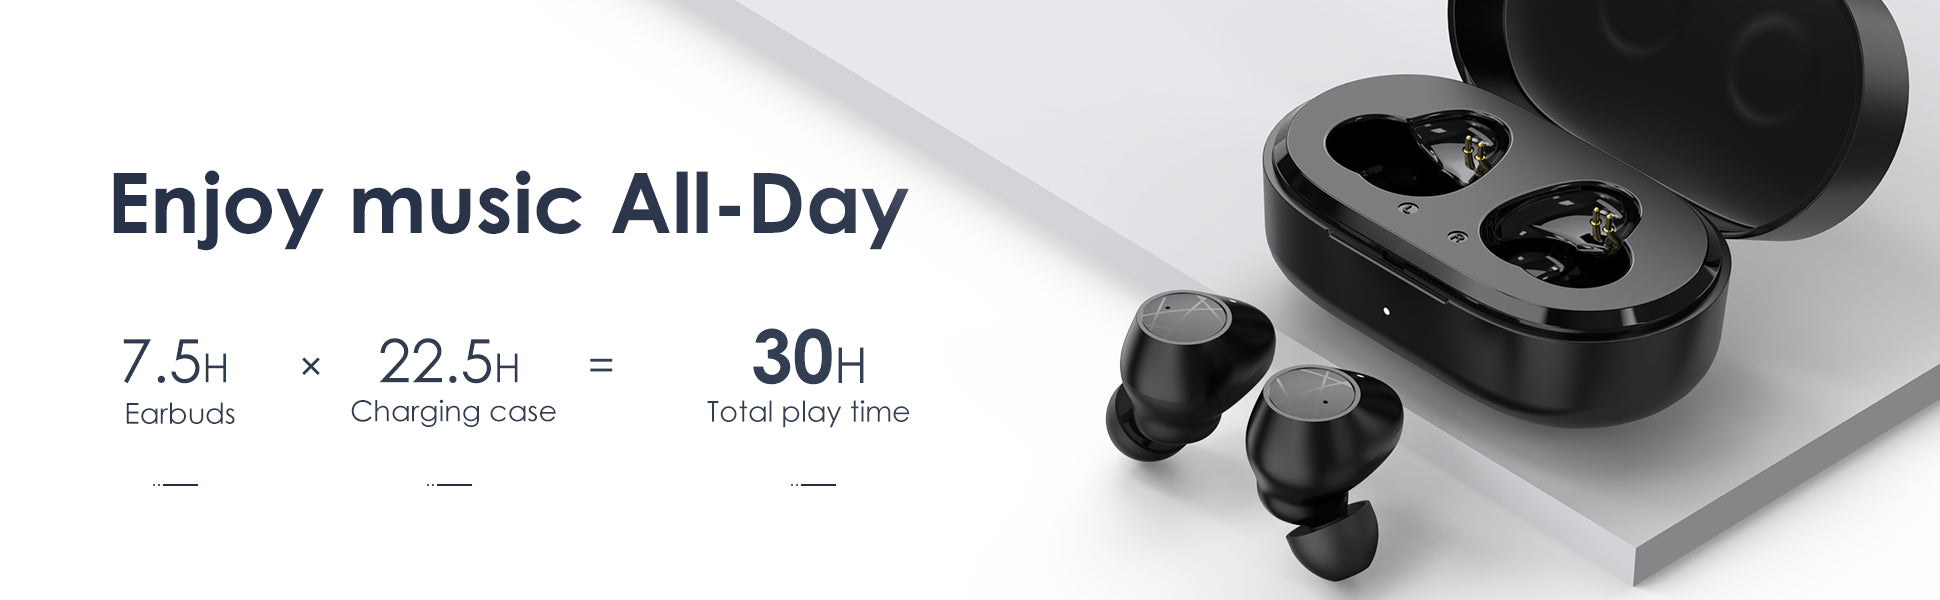 holyhigh-wireless-earbuds-et2-Details-3